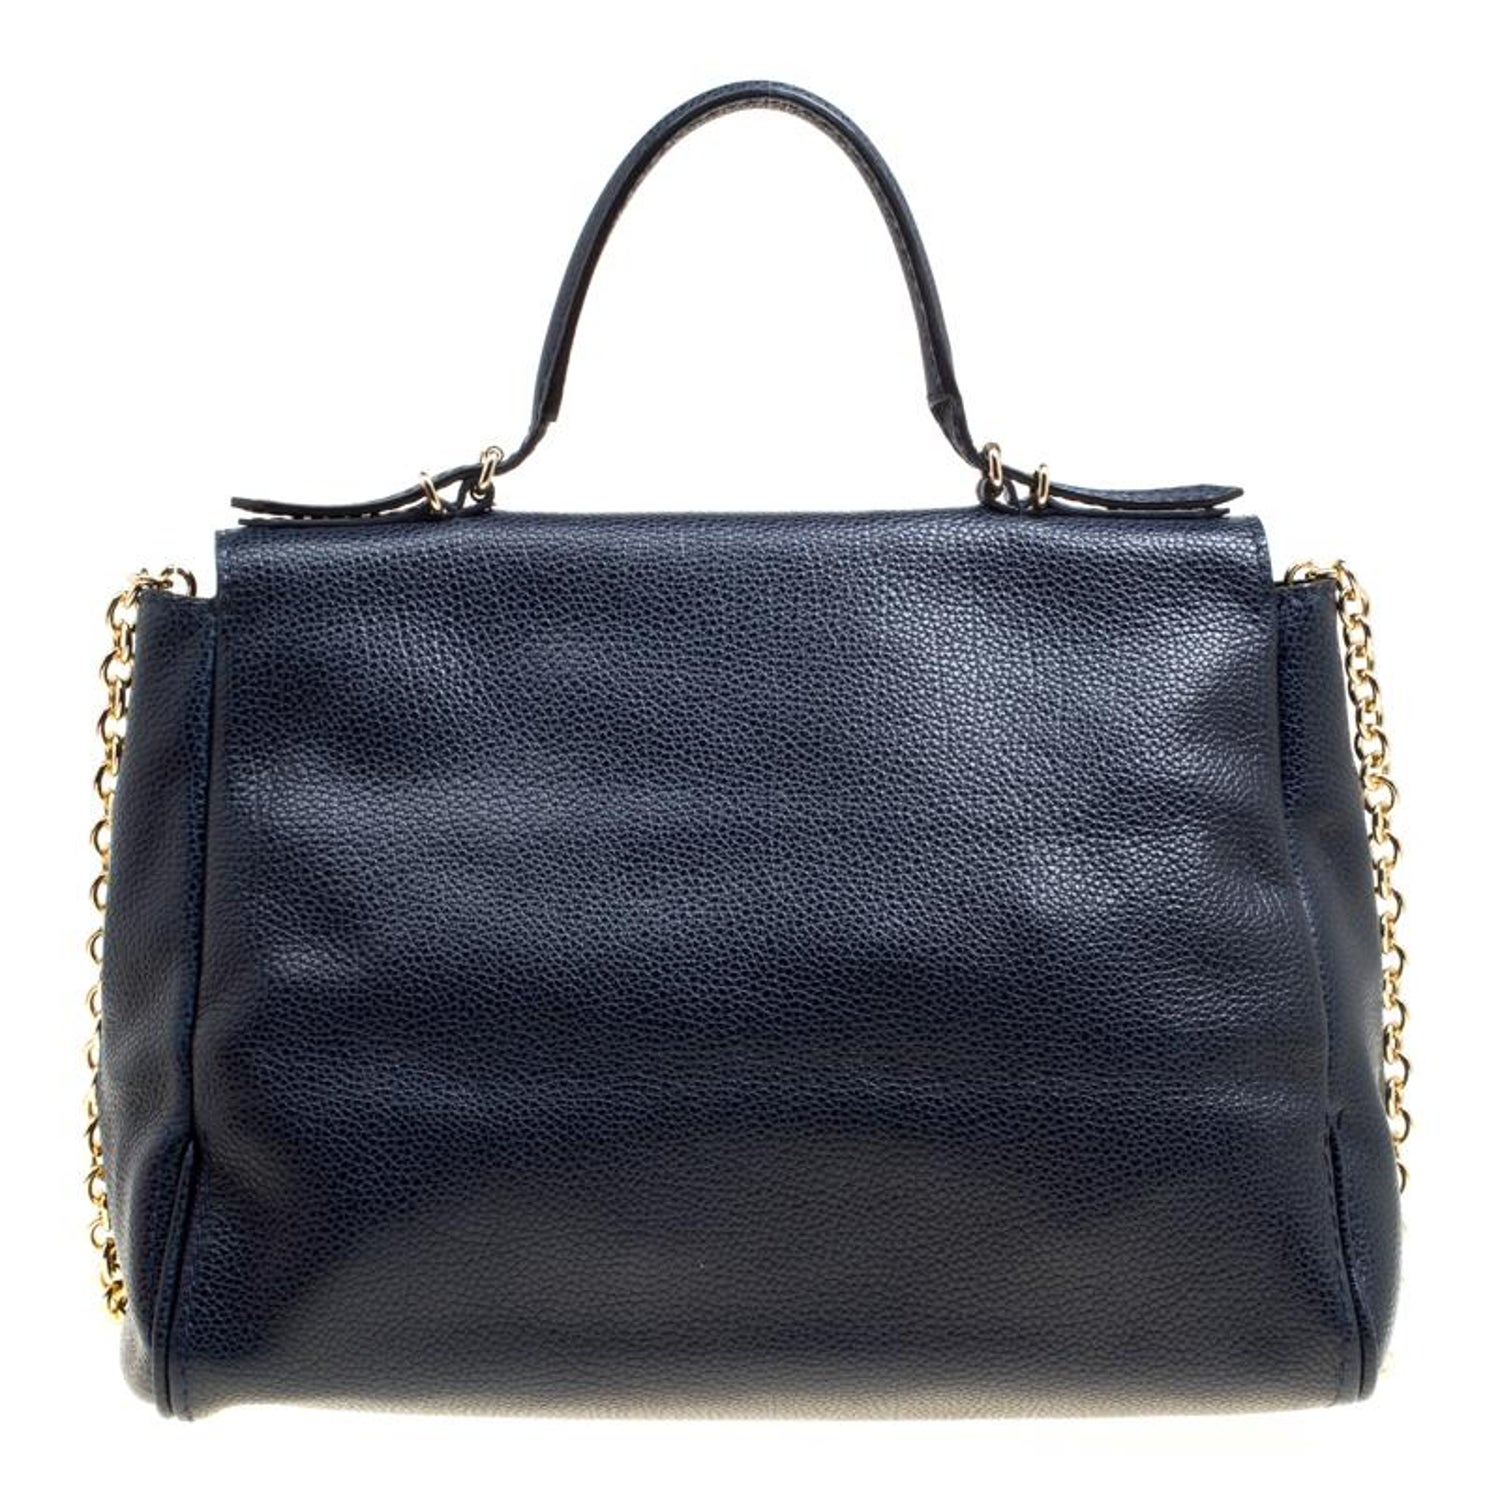 Carolina Herrera Blue Leather Minuetto Top Handle Flap Shoulder Bag at  1stdibs 7e0a7523a8943